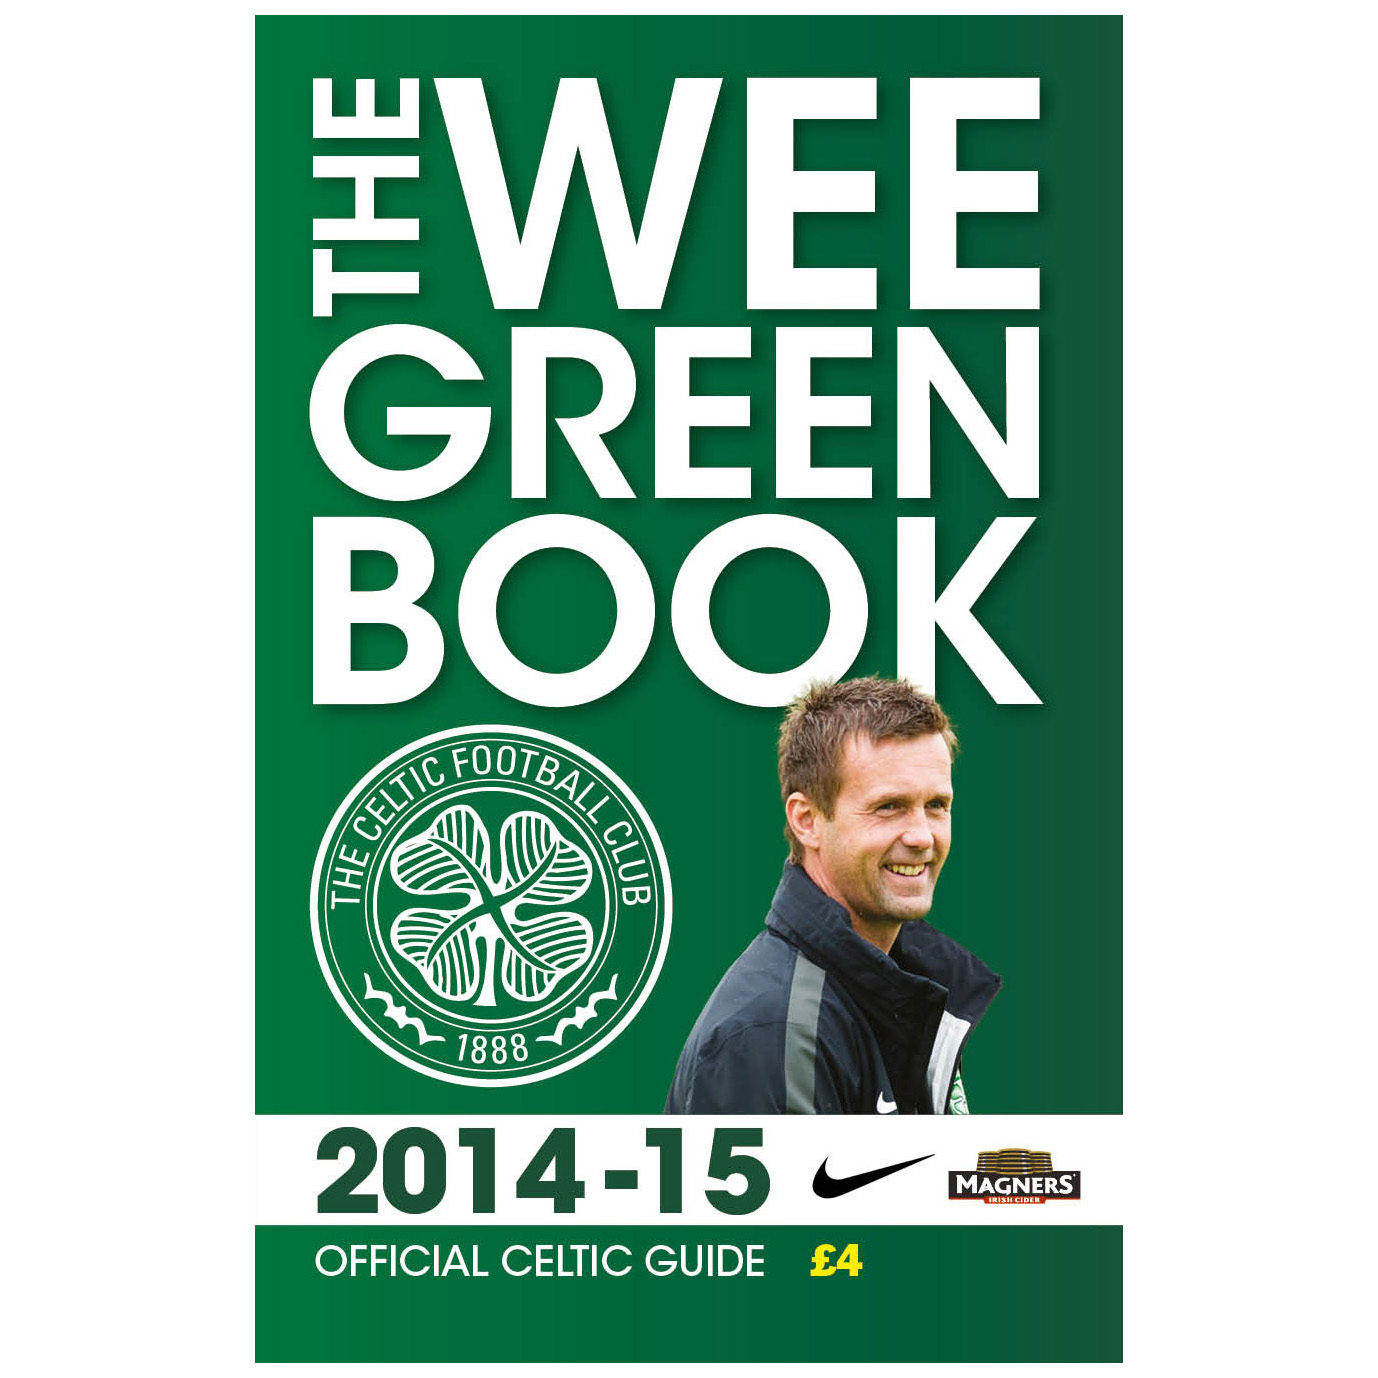 Celtic The Wee Green Book